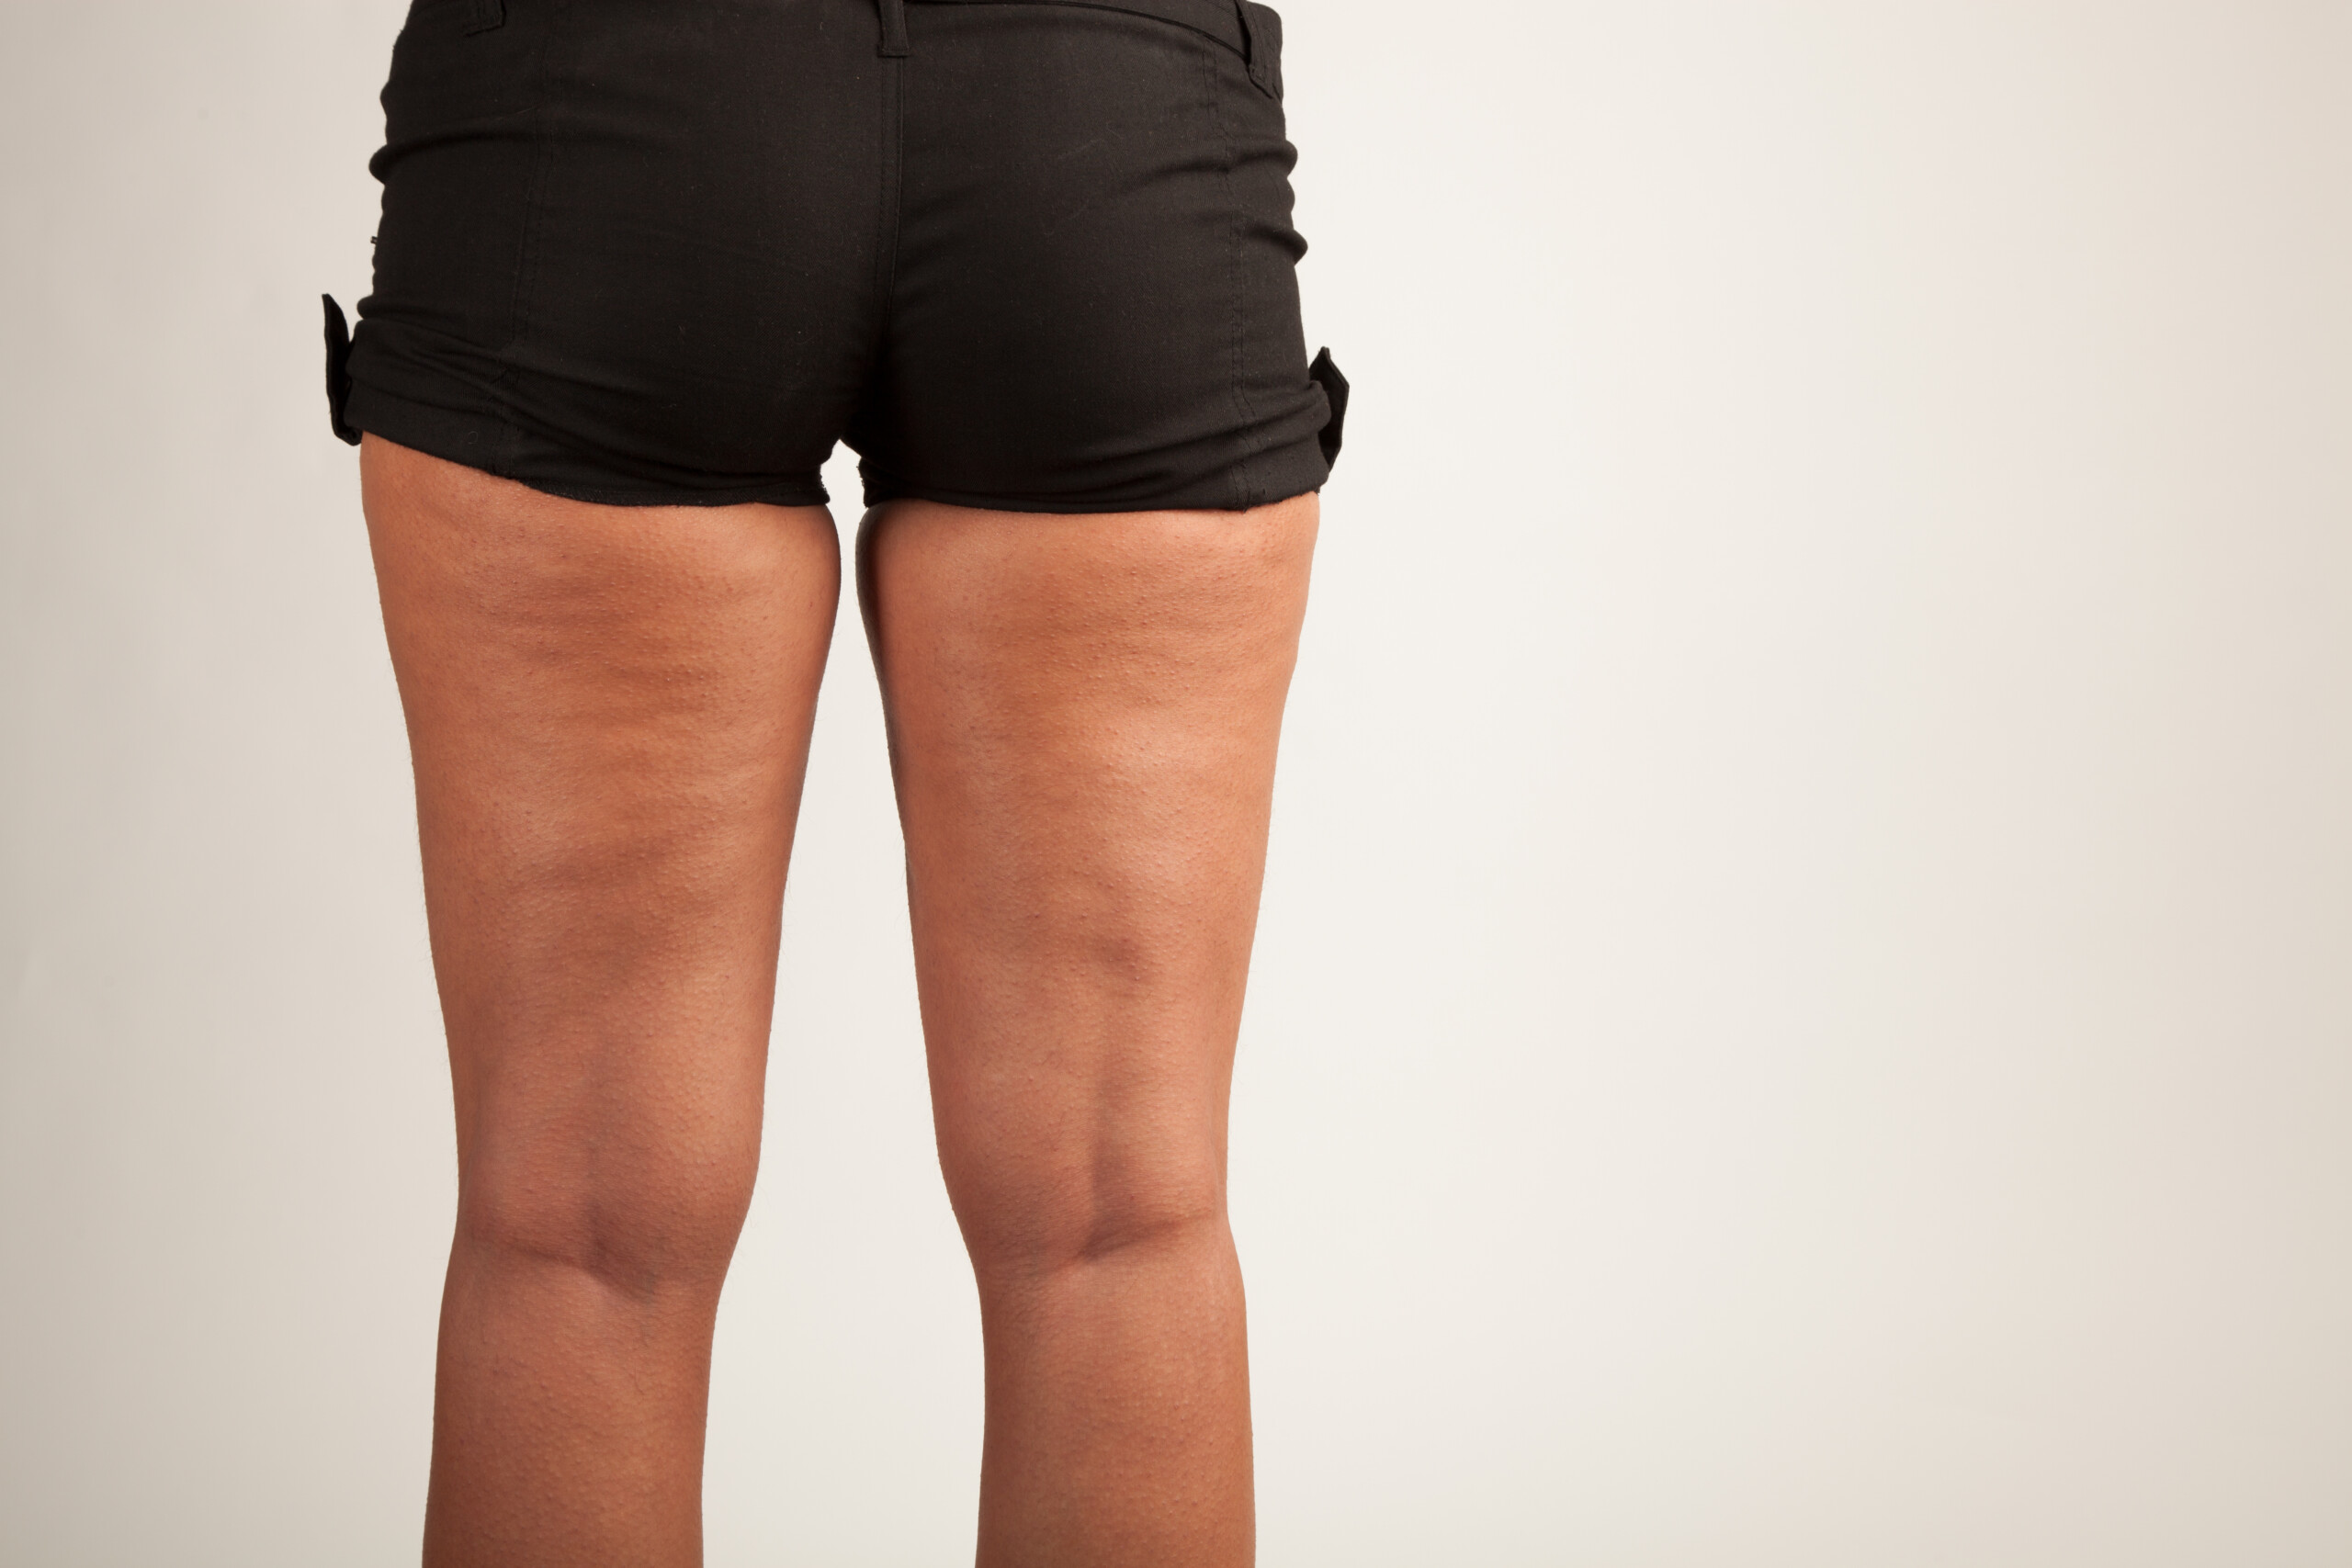 Get Rid of Cellulite with Burst Exercise